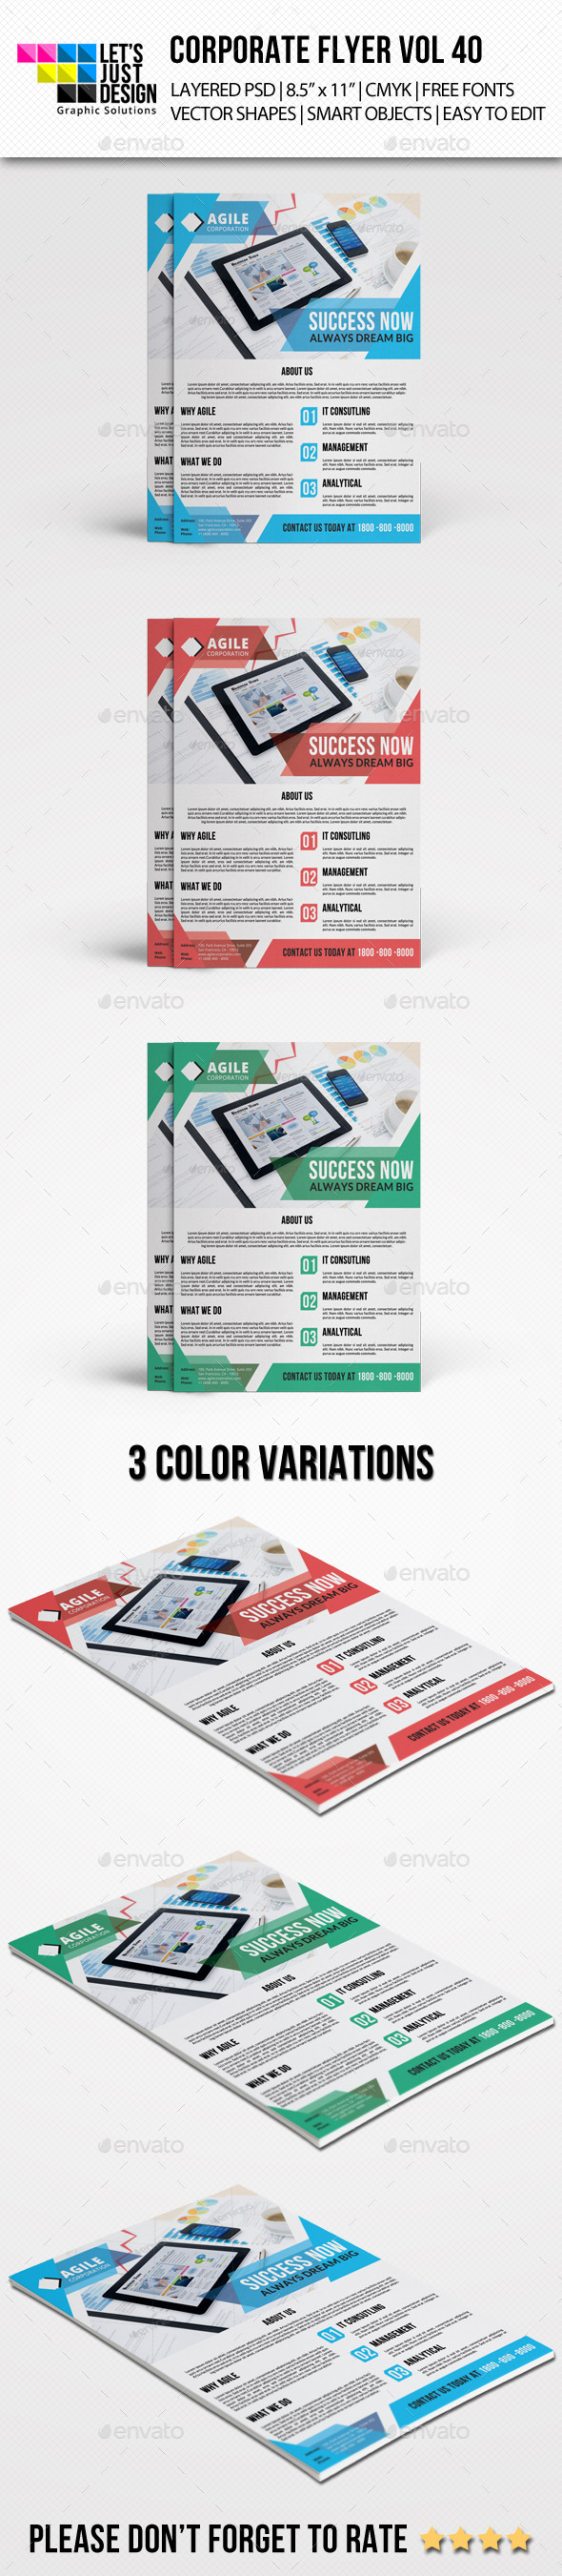 Corporate Flyer Template Vol 40 - Corporate Flyers